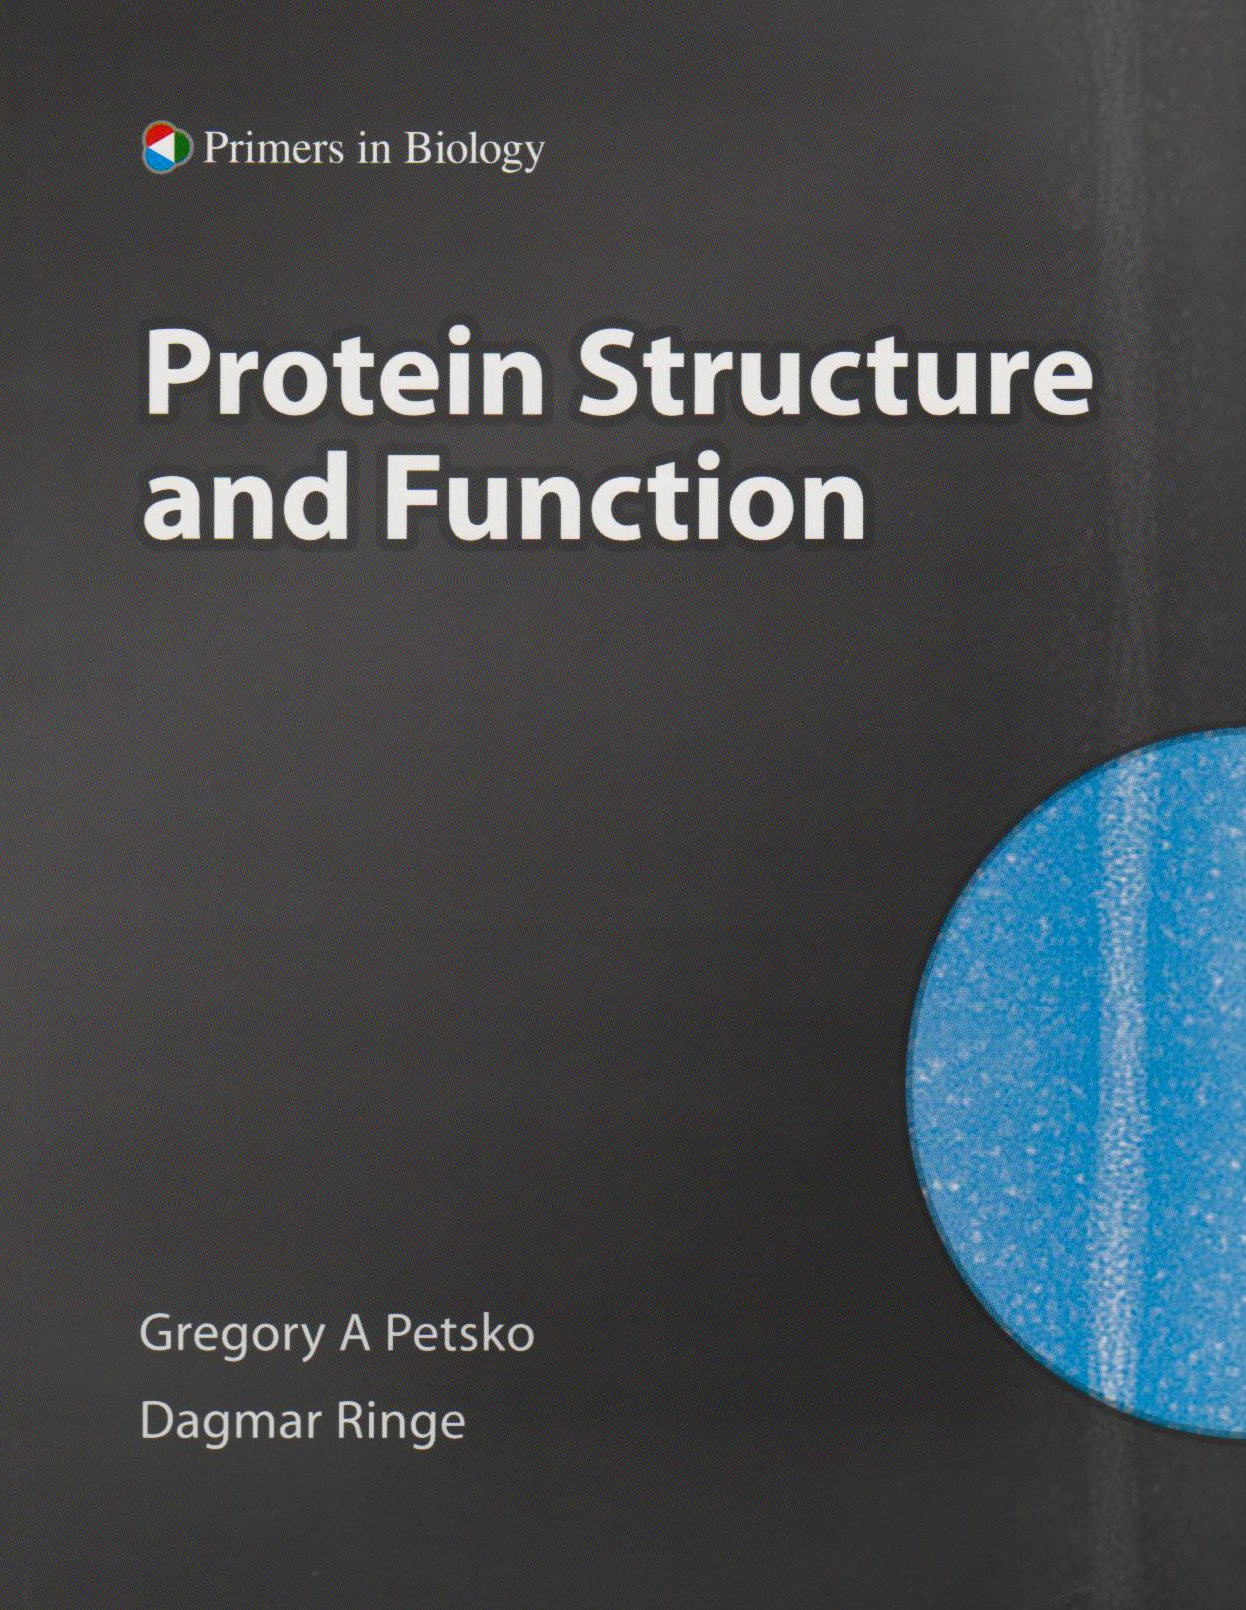 Protein Structure and Function (Primers in Biology): Amazon ...